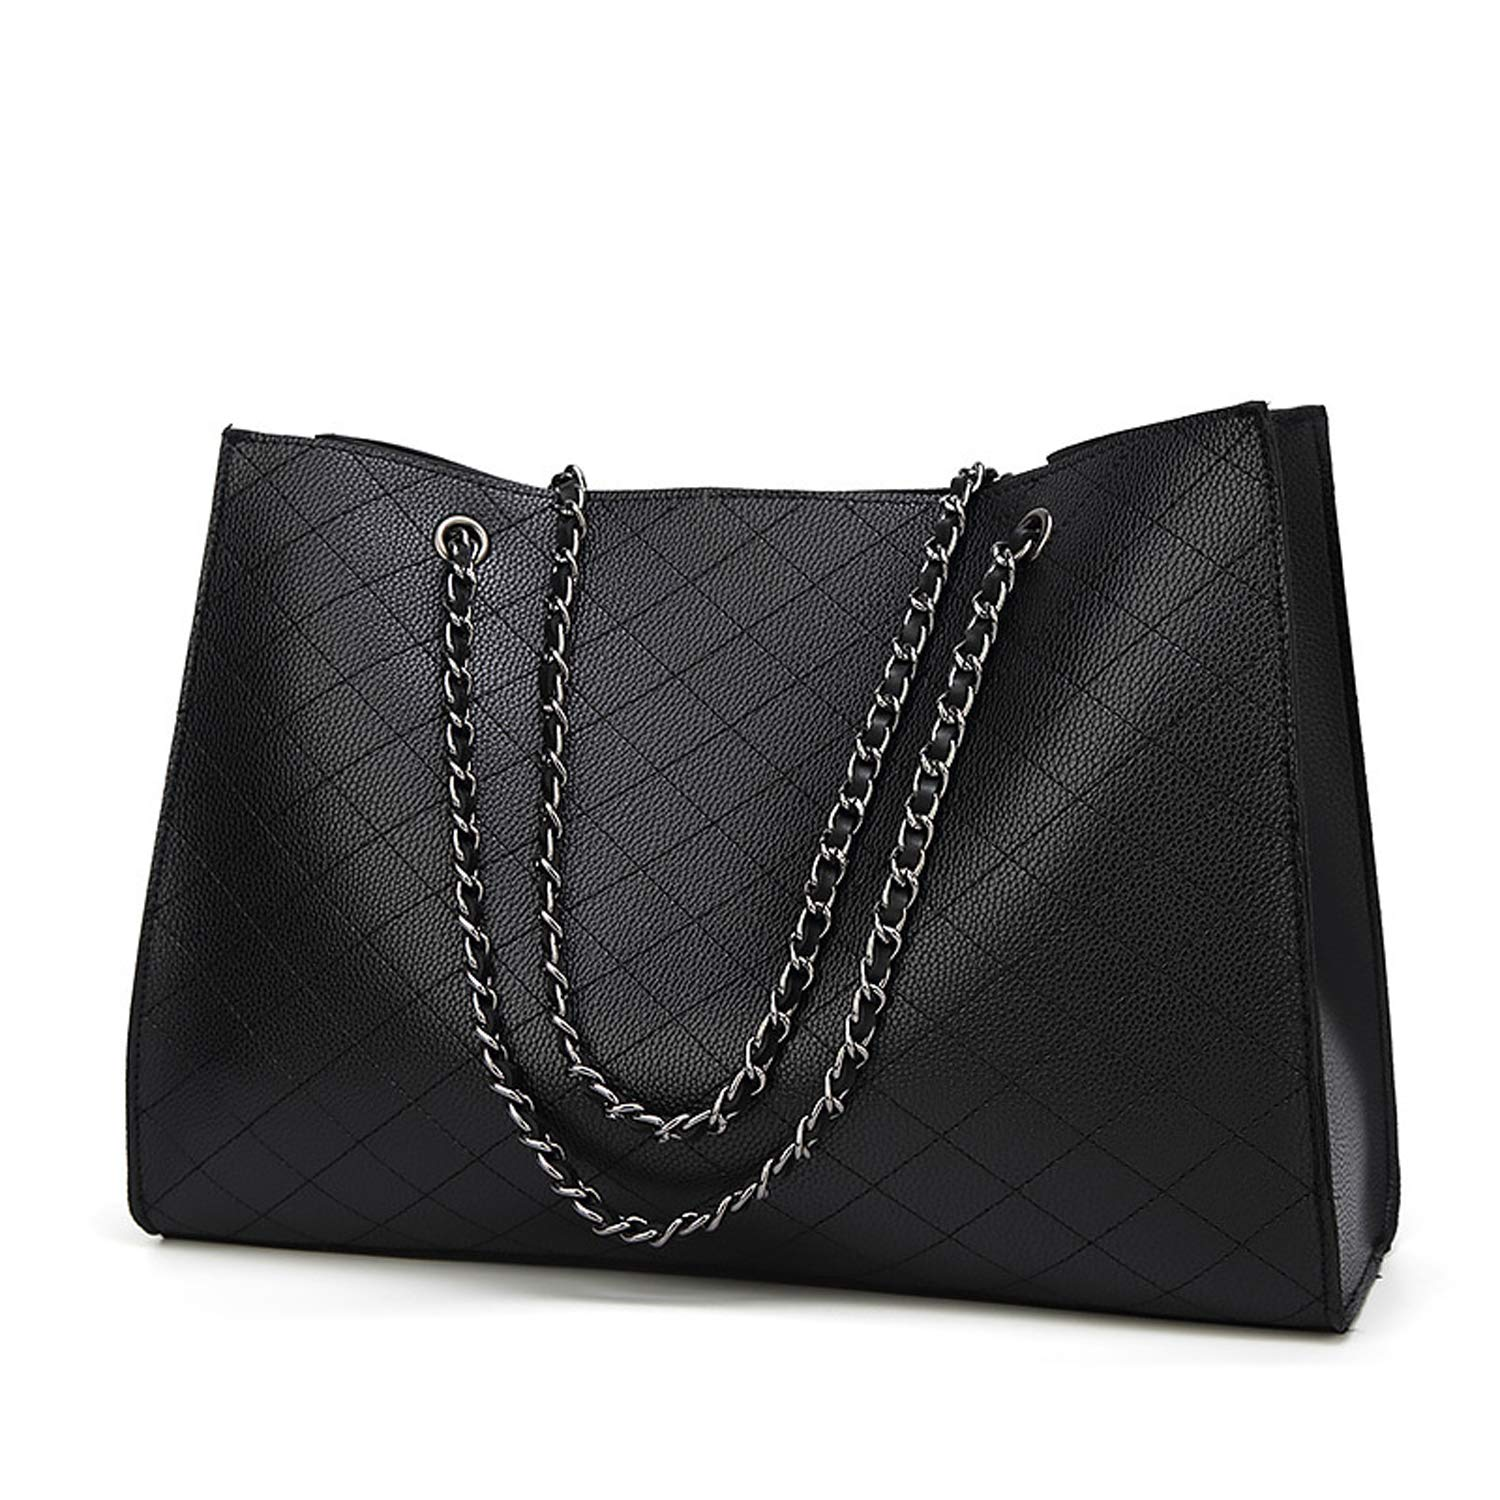 0ad9c7ab4e3 Amazon.com  Quilted Handbags for Women Large Chains Tote Shoulder Bags with  Zipper Pouch (Black)  Shoes